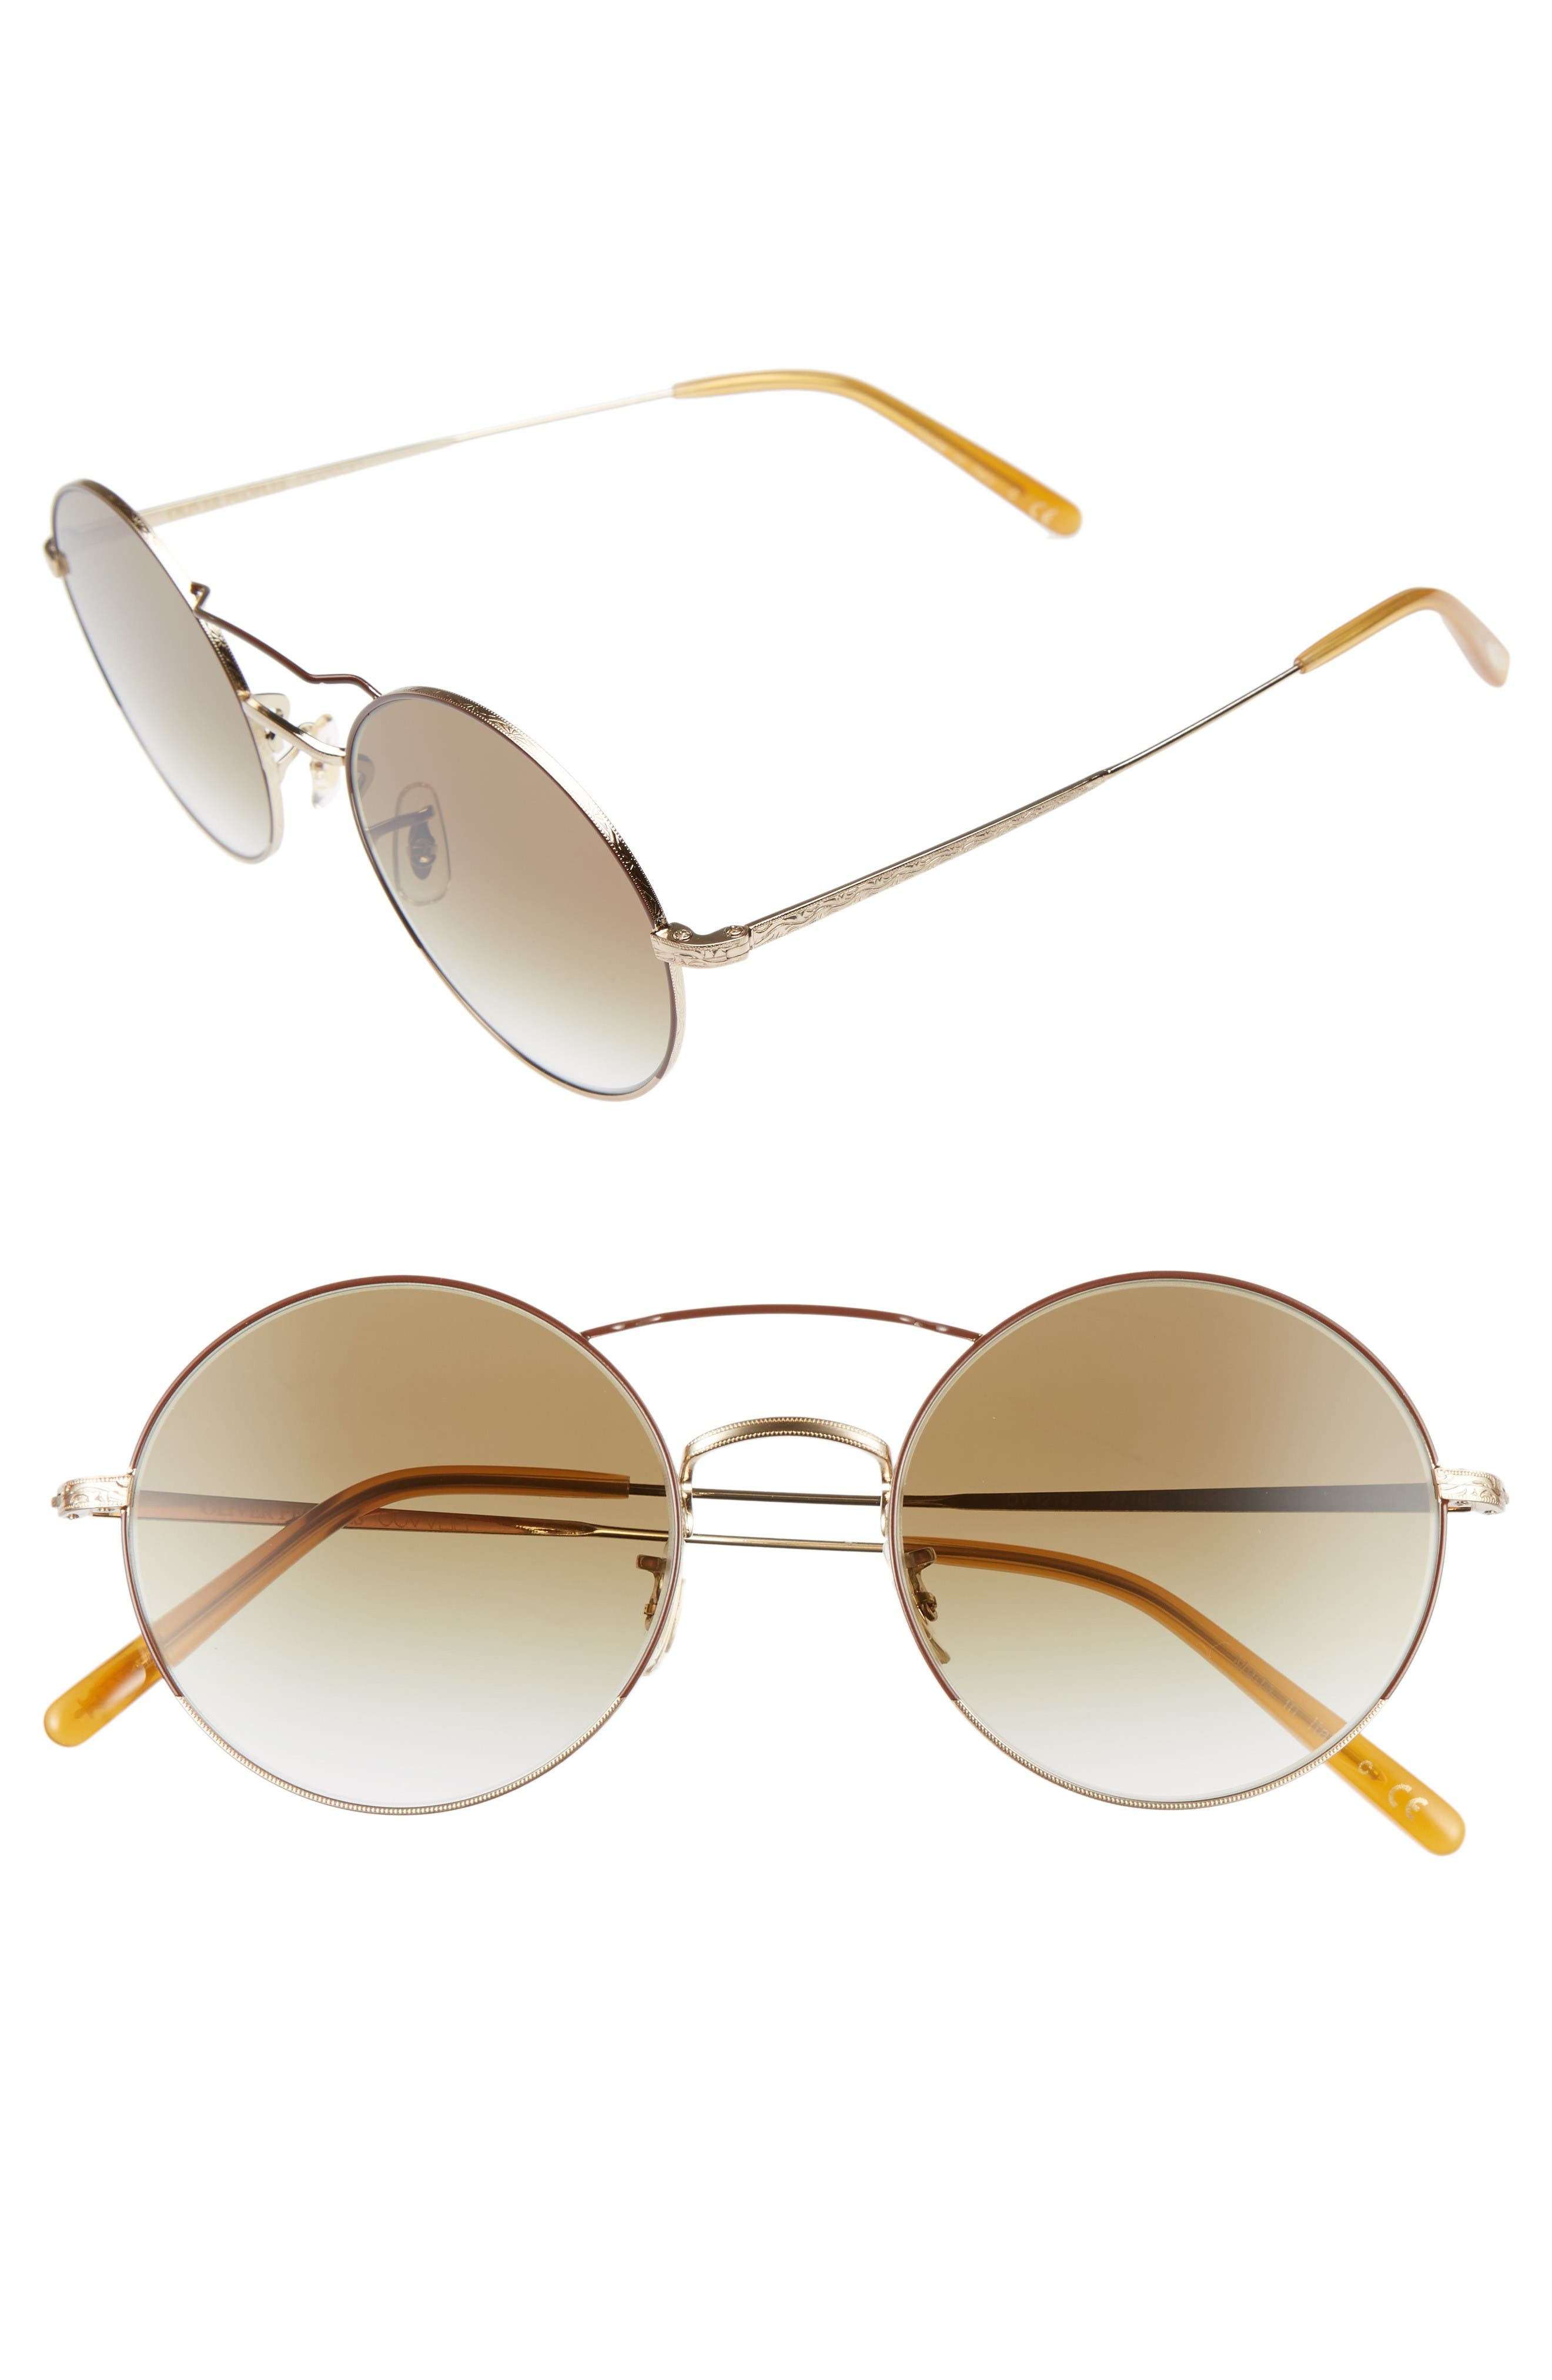 Nickol 53mm Round Sunglasses,                         Main,                         color, Gold